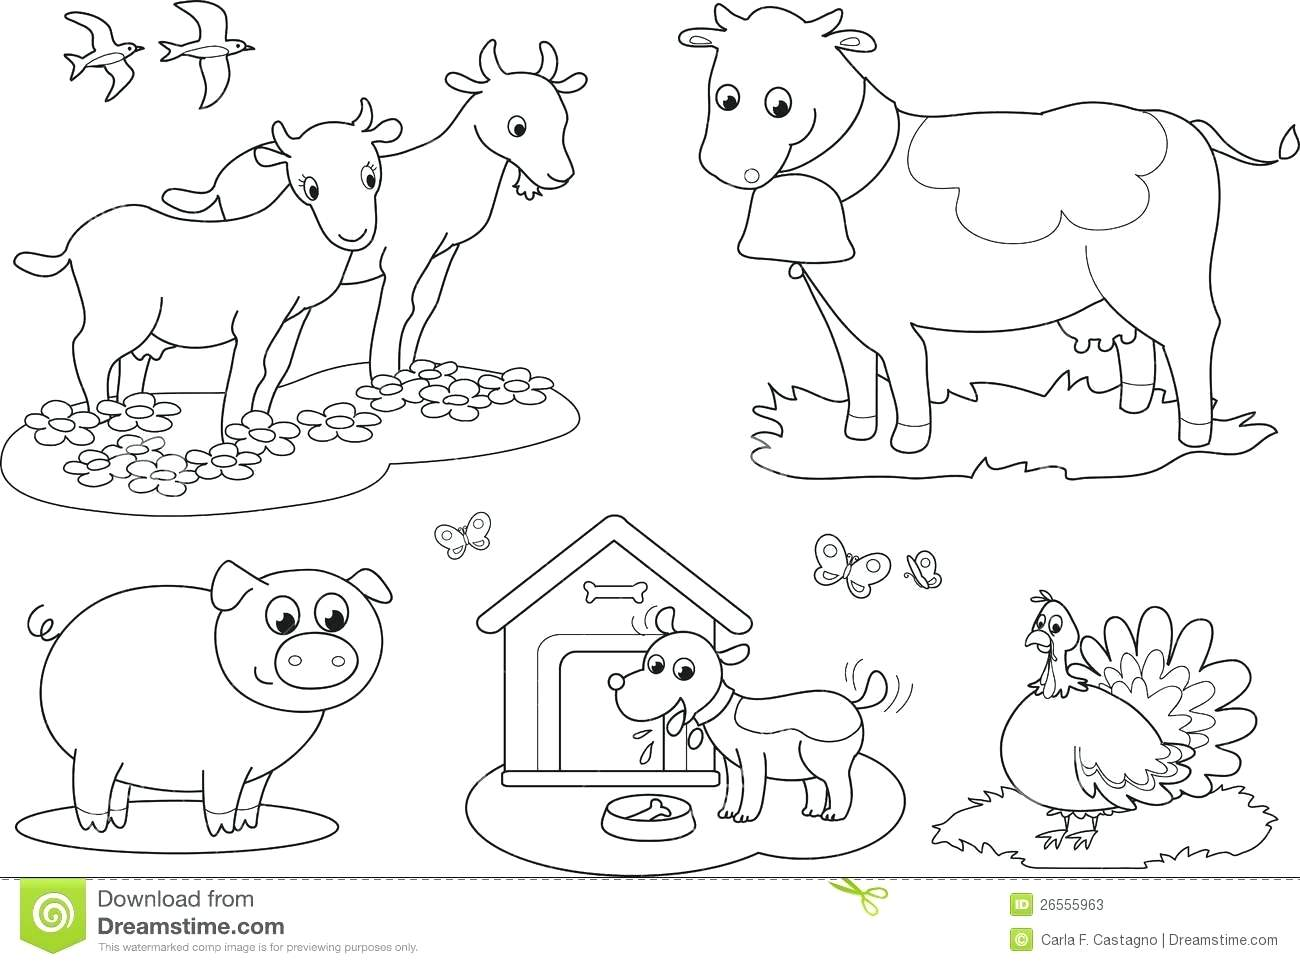 Old Macdonald Worksheet For Preschool